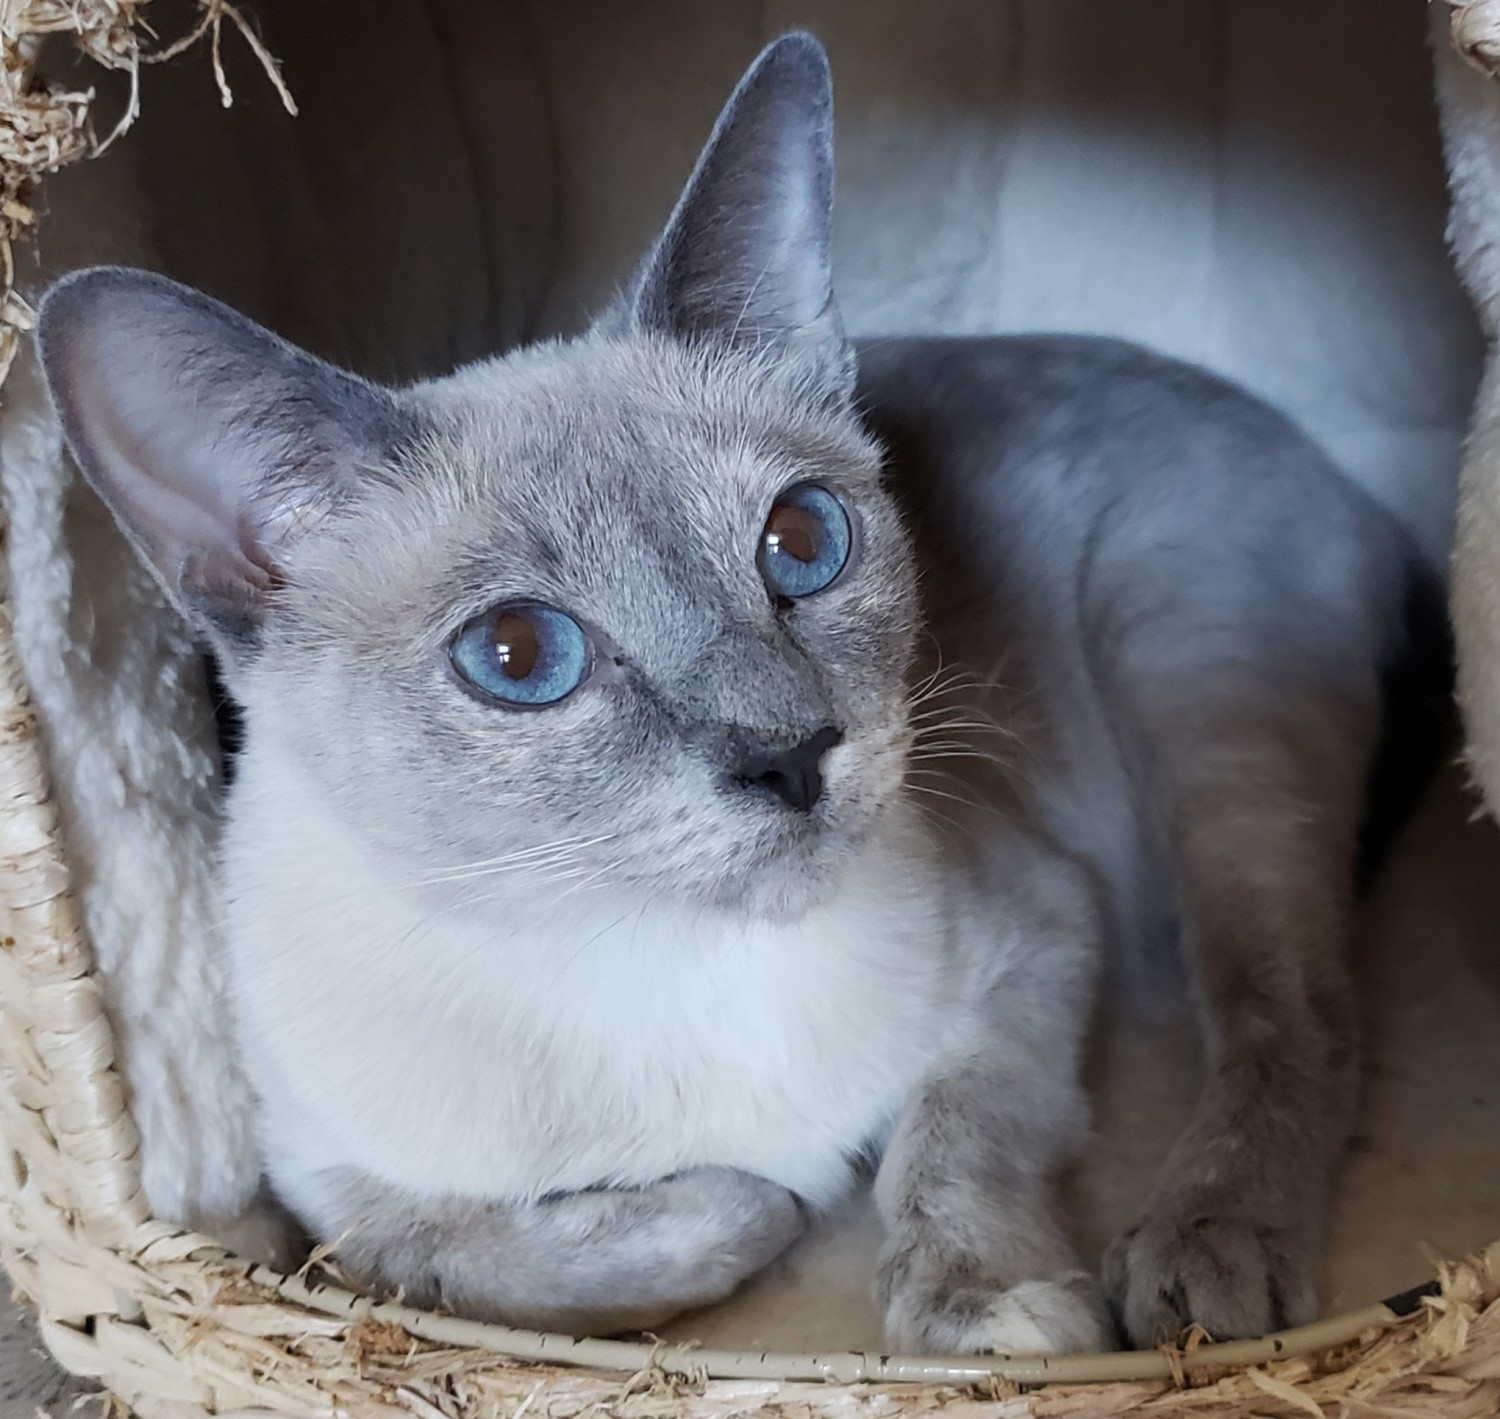 Sarabelle Specialty Purebred Cat Rescue